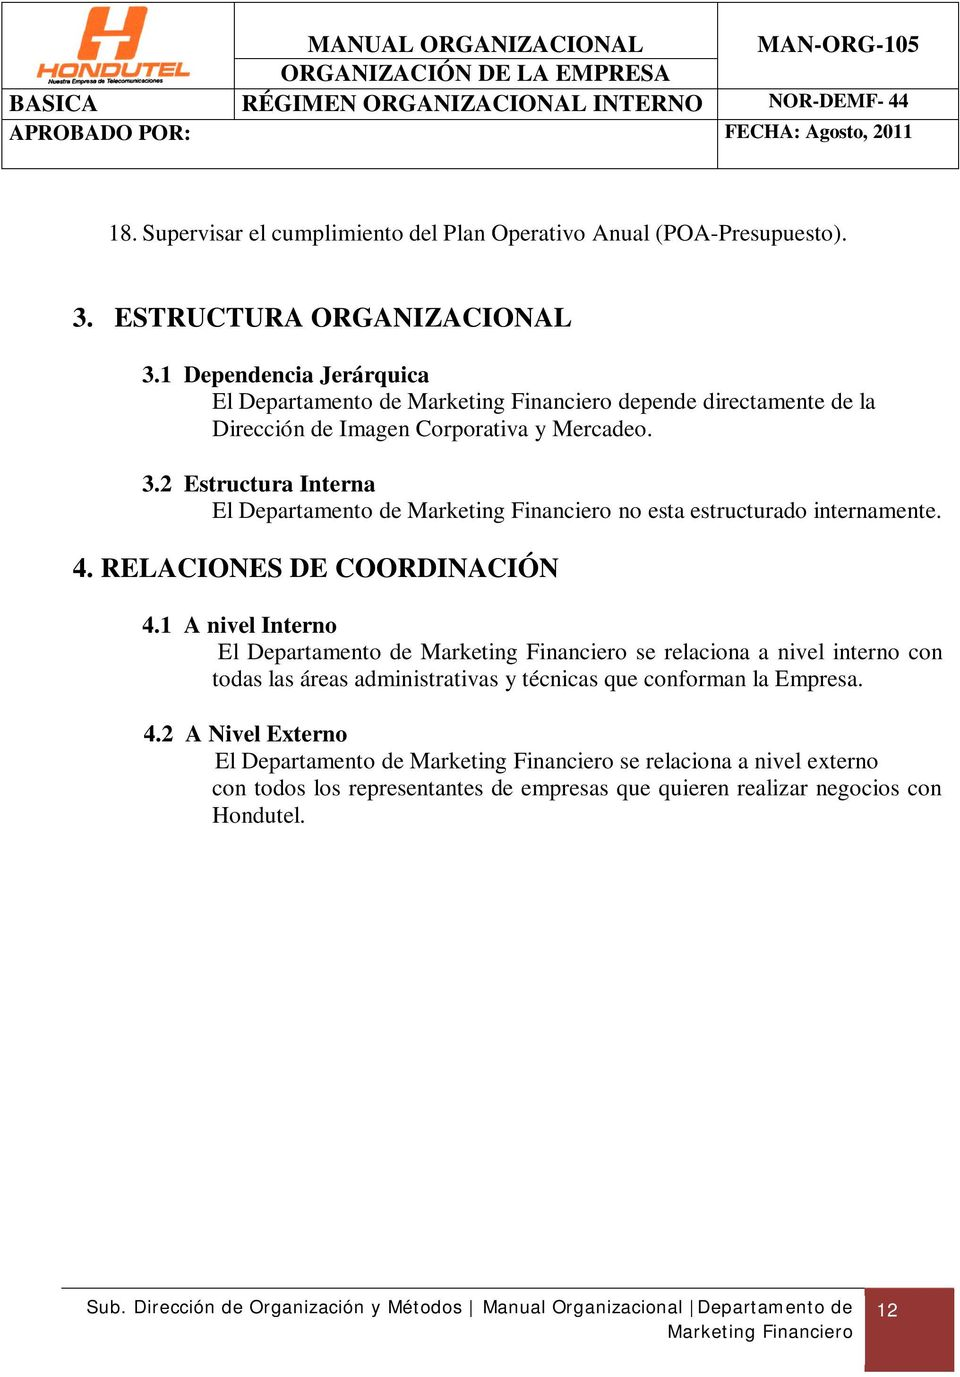 2 Estructura Interna El Departamento de Marketing Financiero no esta estructurado internamente. 4. RELACIONES DE COORDINACIÓN 4.